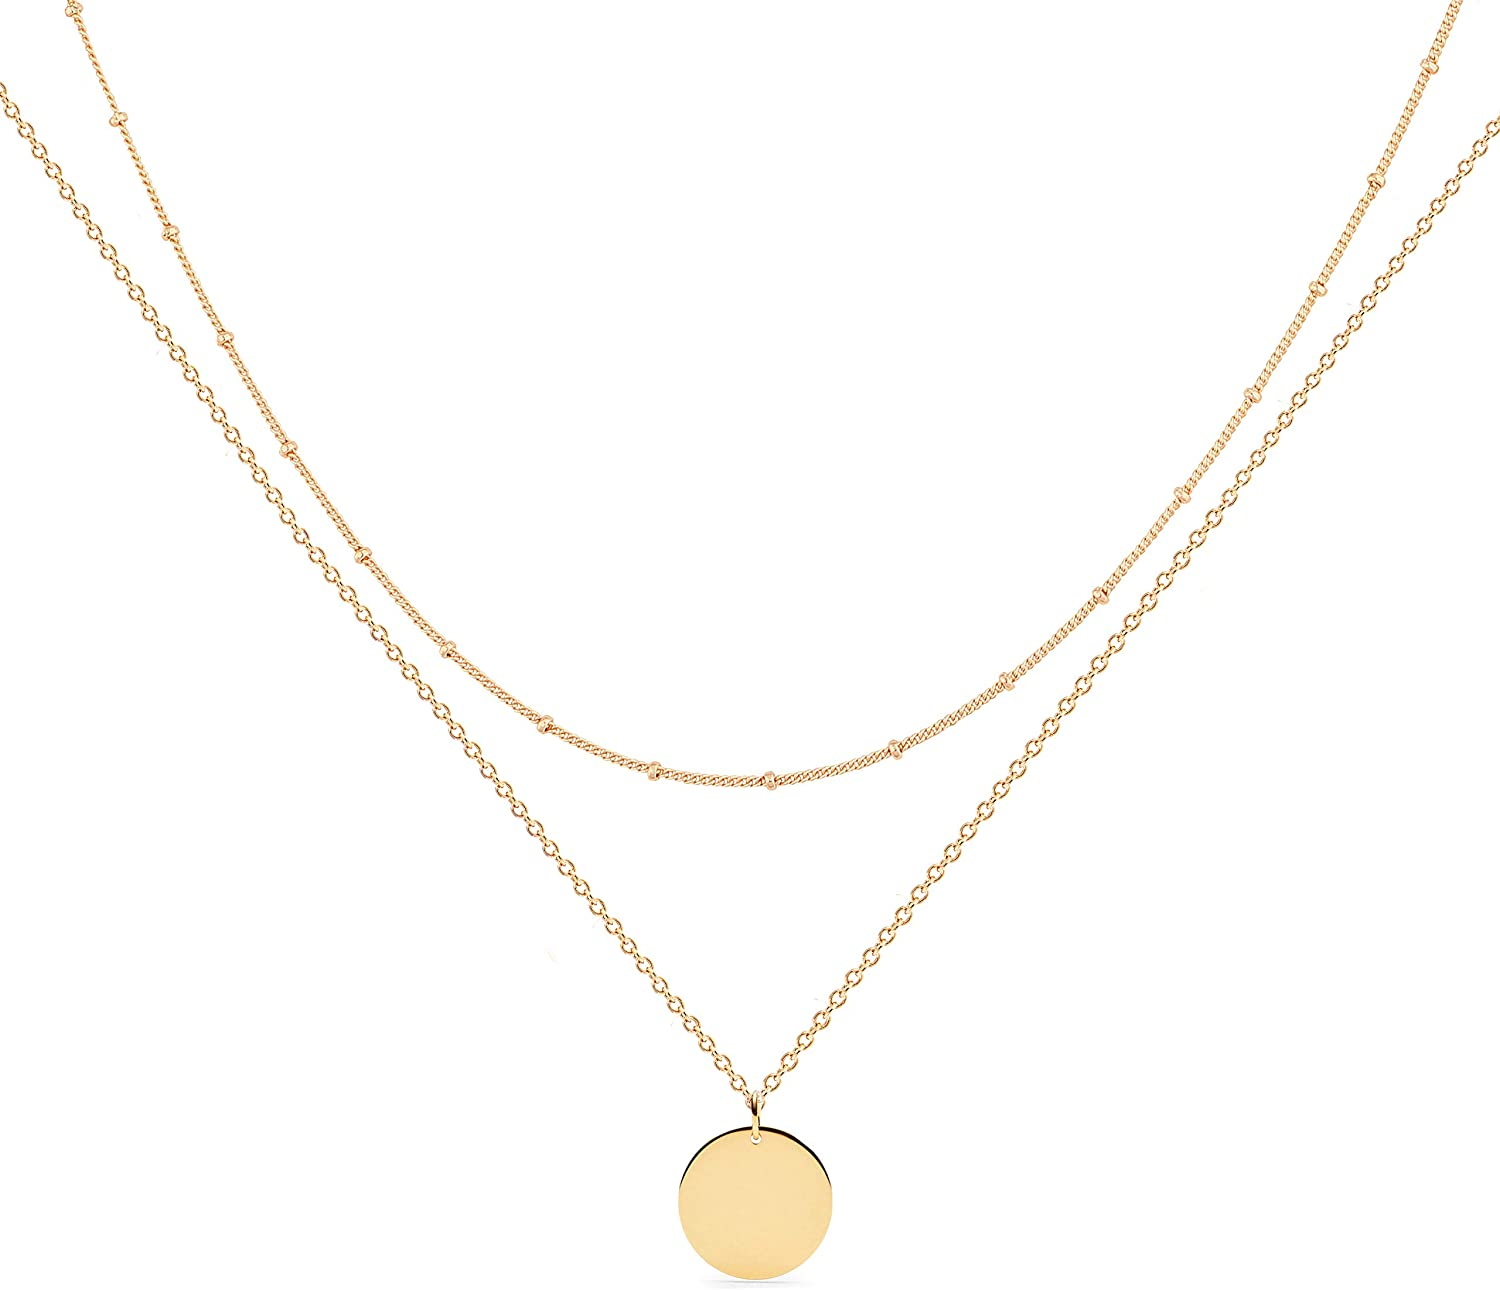 Mevecco Layered Heart Necklace Pendant Handmade 18k Gold Plated Dainty Gold Choker Arrow Bar Layering Long Necklace for Women